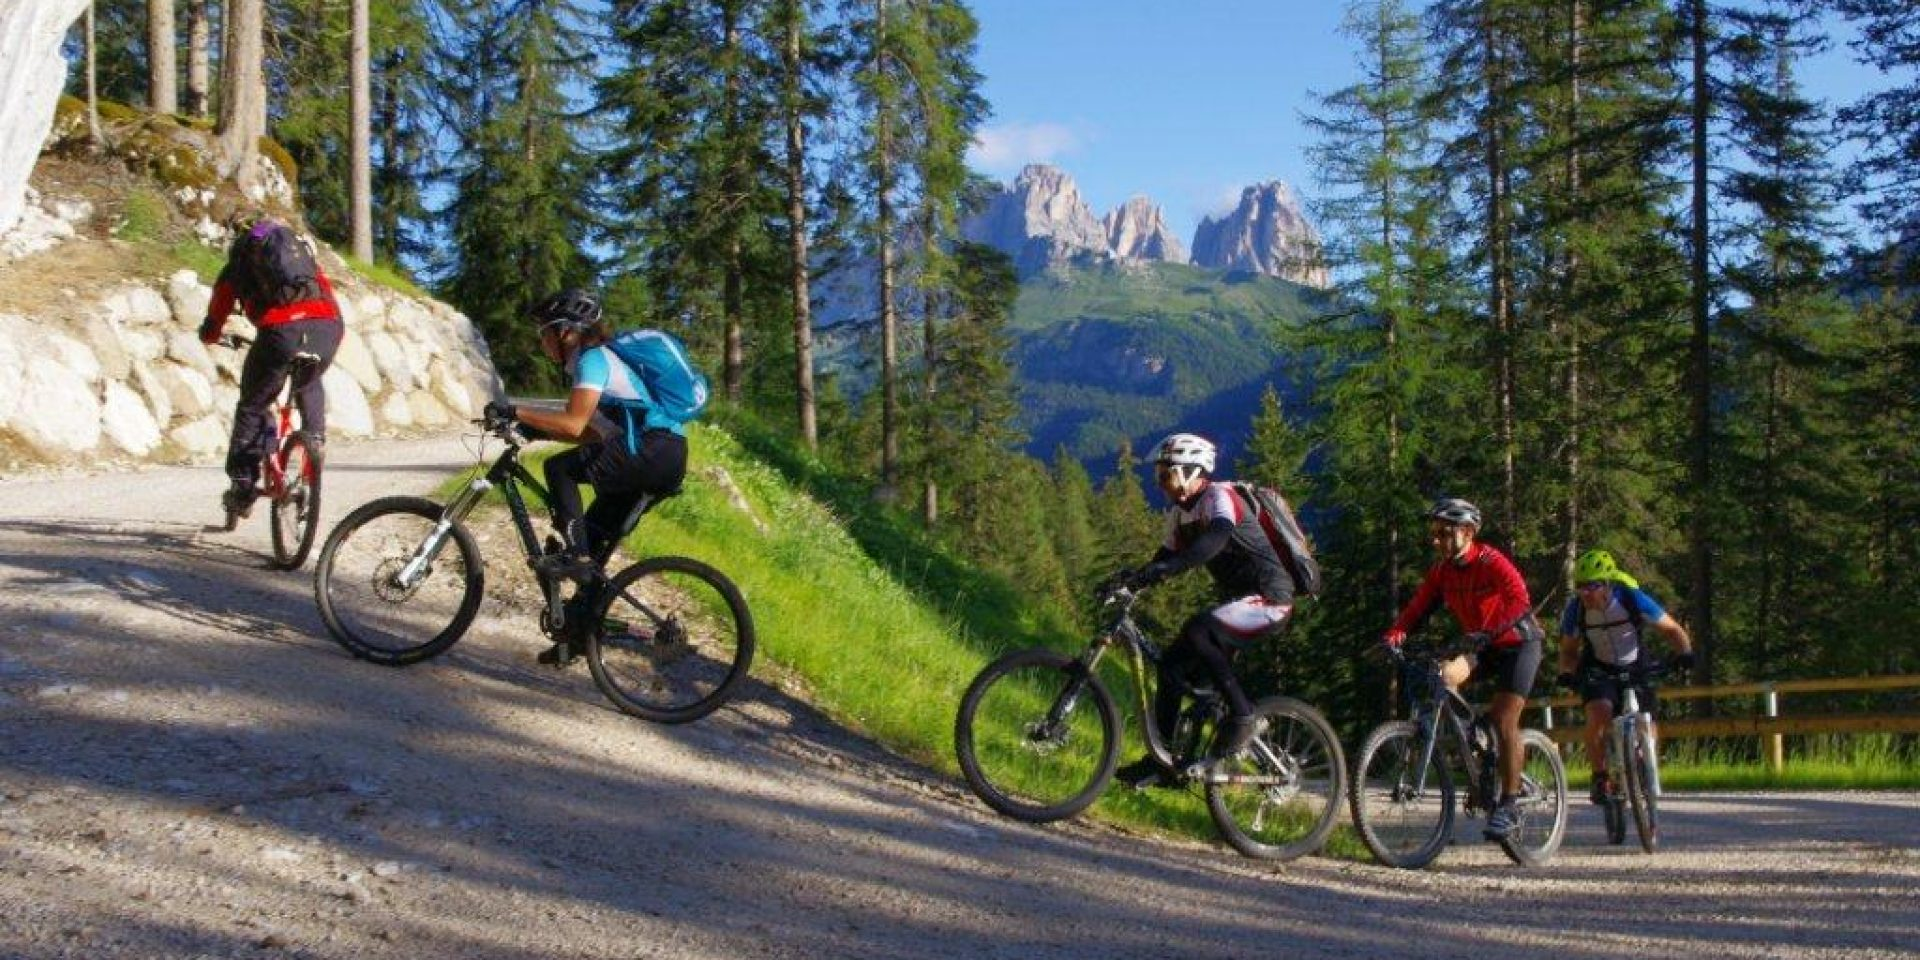 The scenic val Cotrin e-bike tour